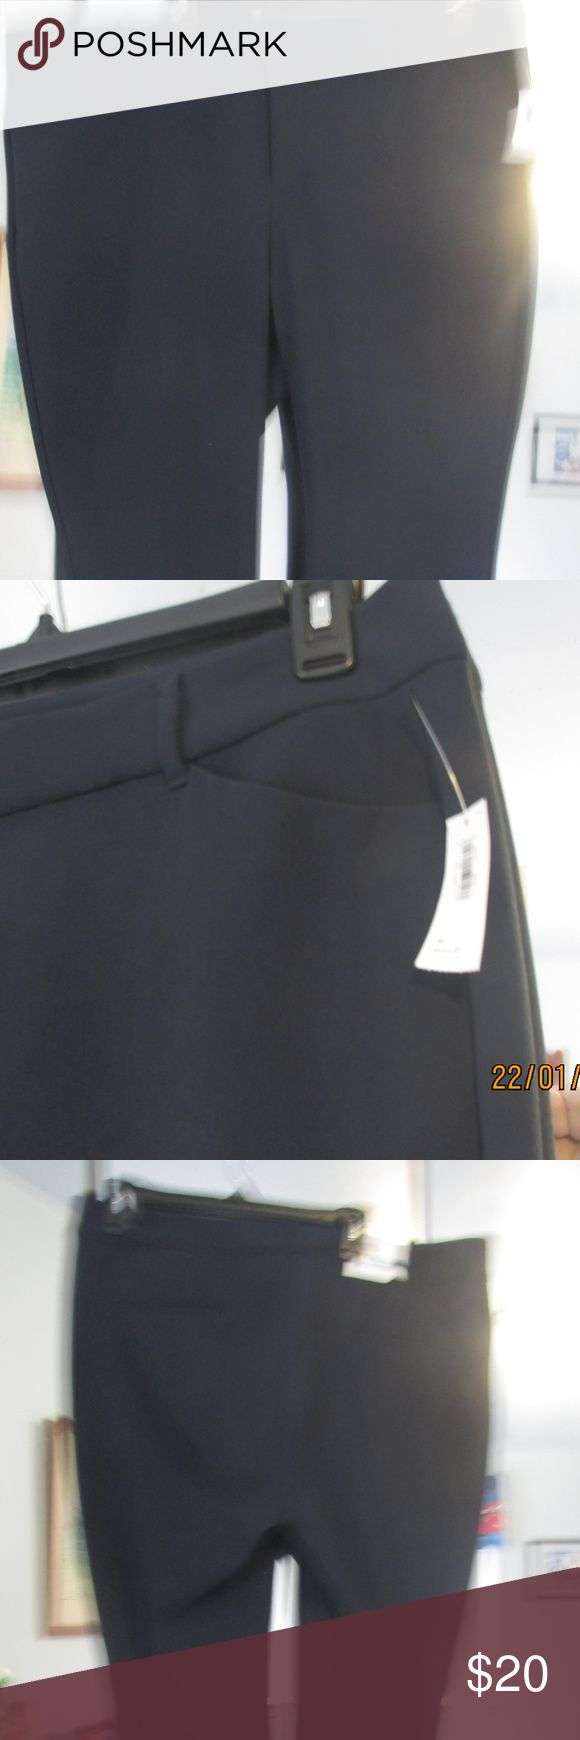 Dress Pants NWT Navy Blue dress pants. New with tags. Regular fit. Old Navy Pants Trousers